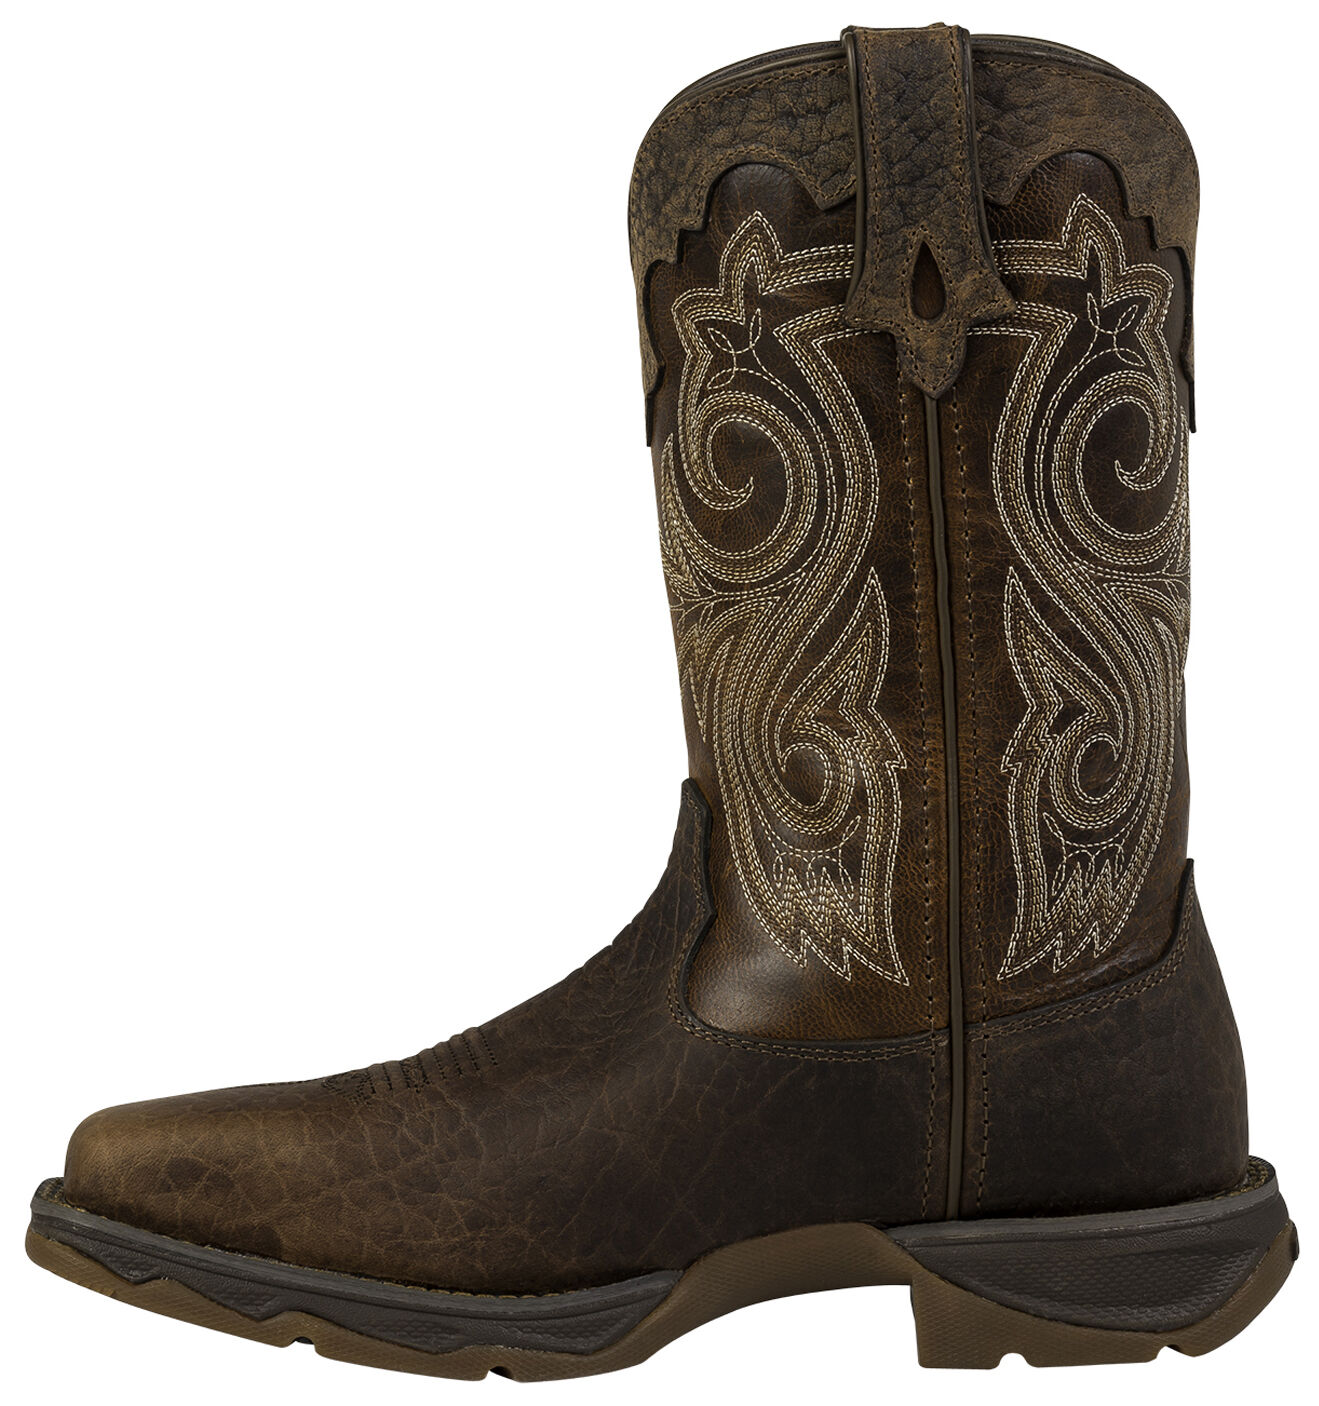 Lady Rebel Cowgirl Boots - Steel Toe